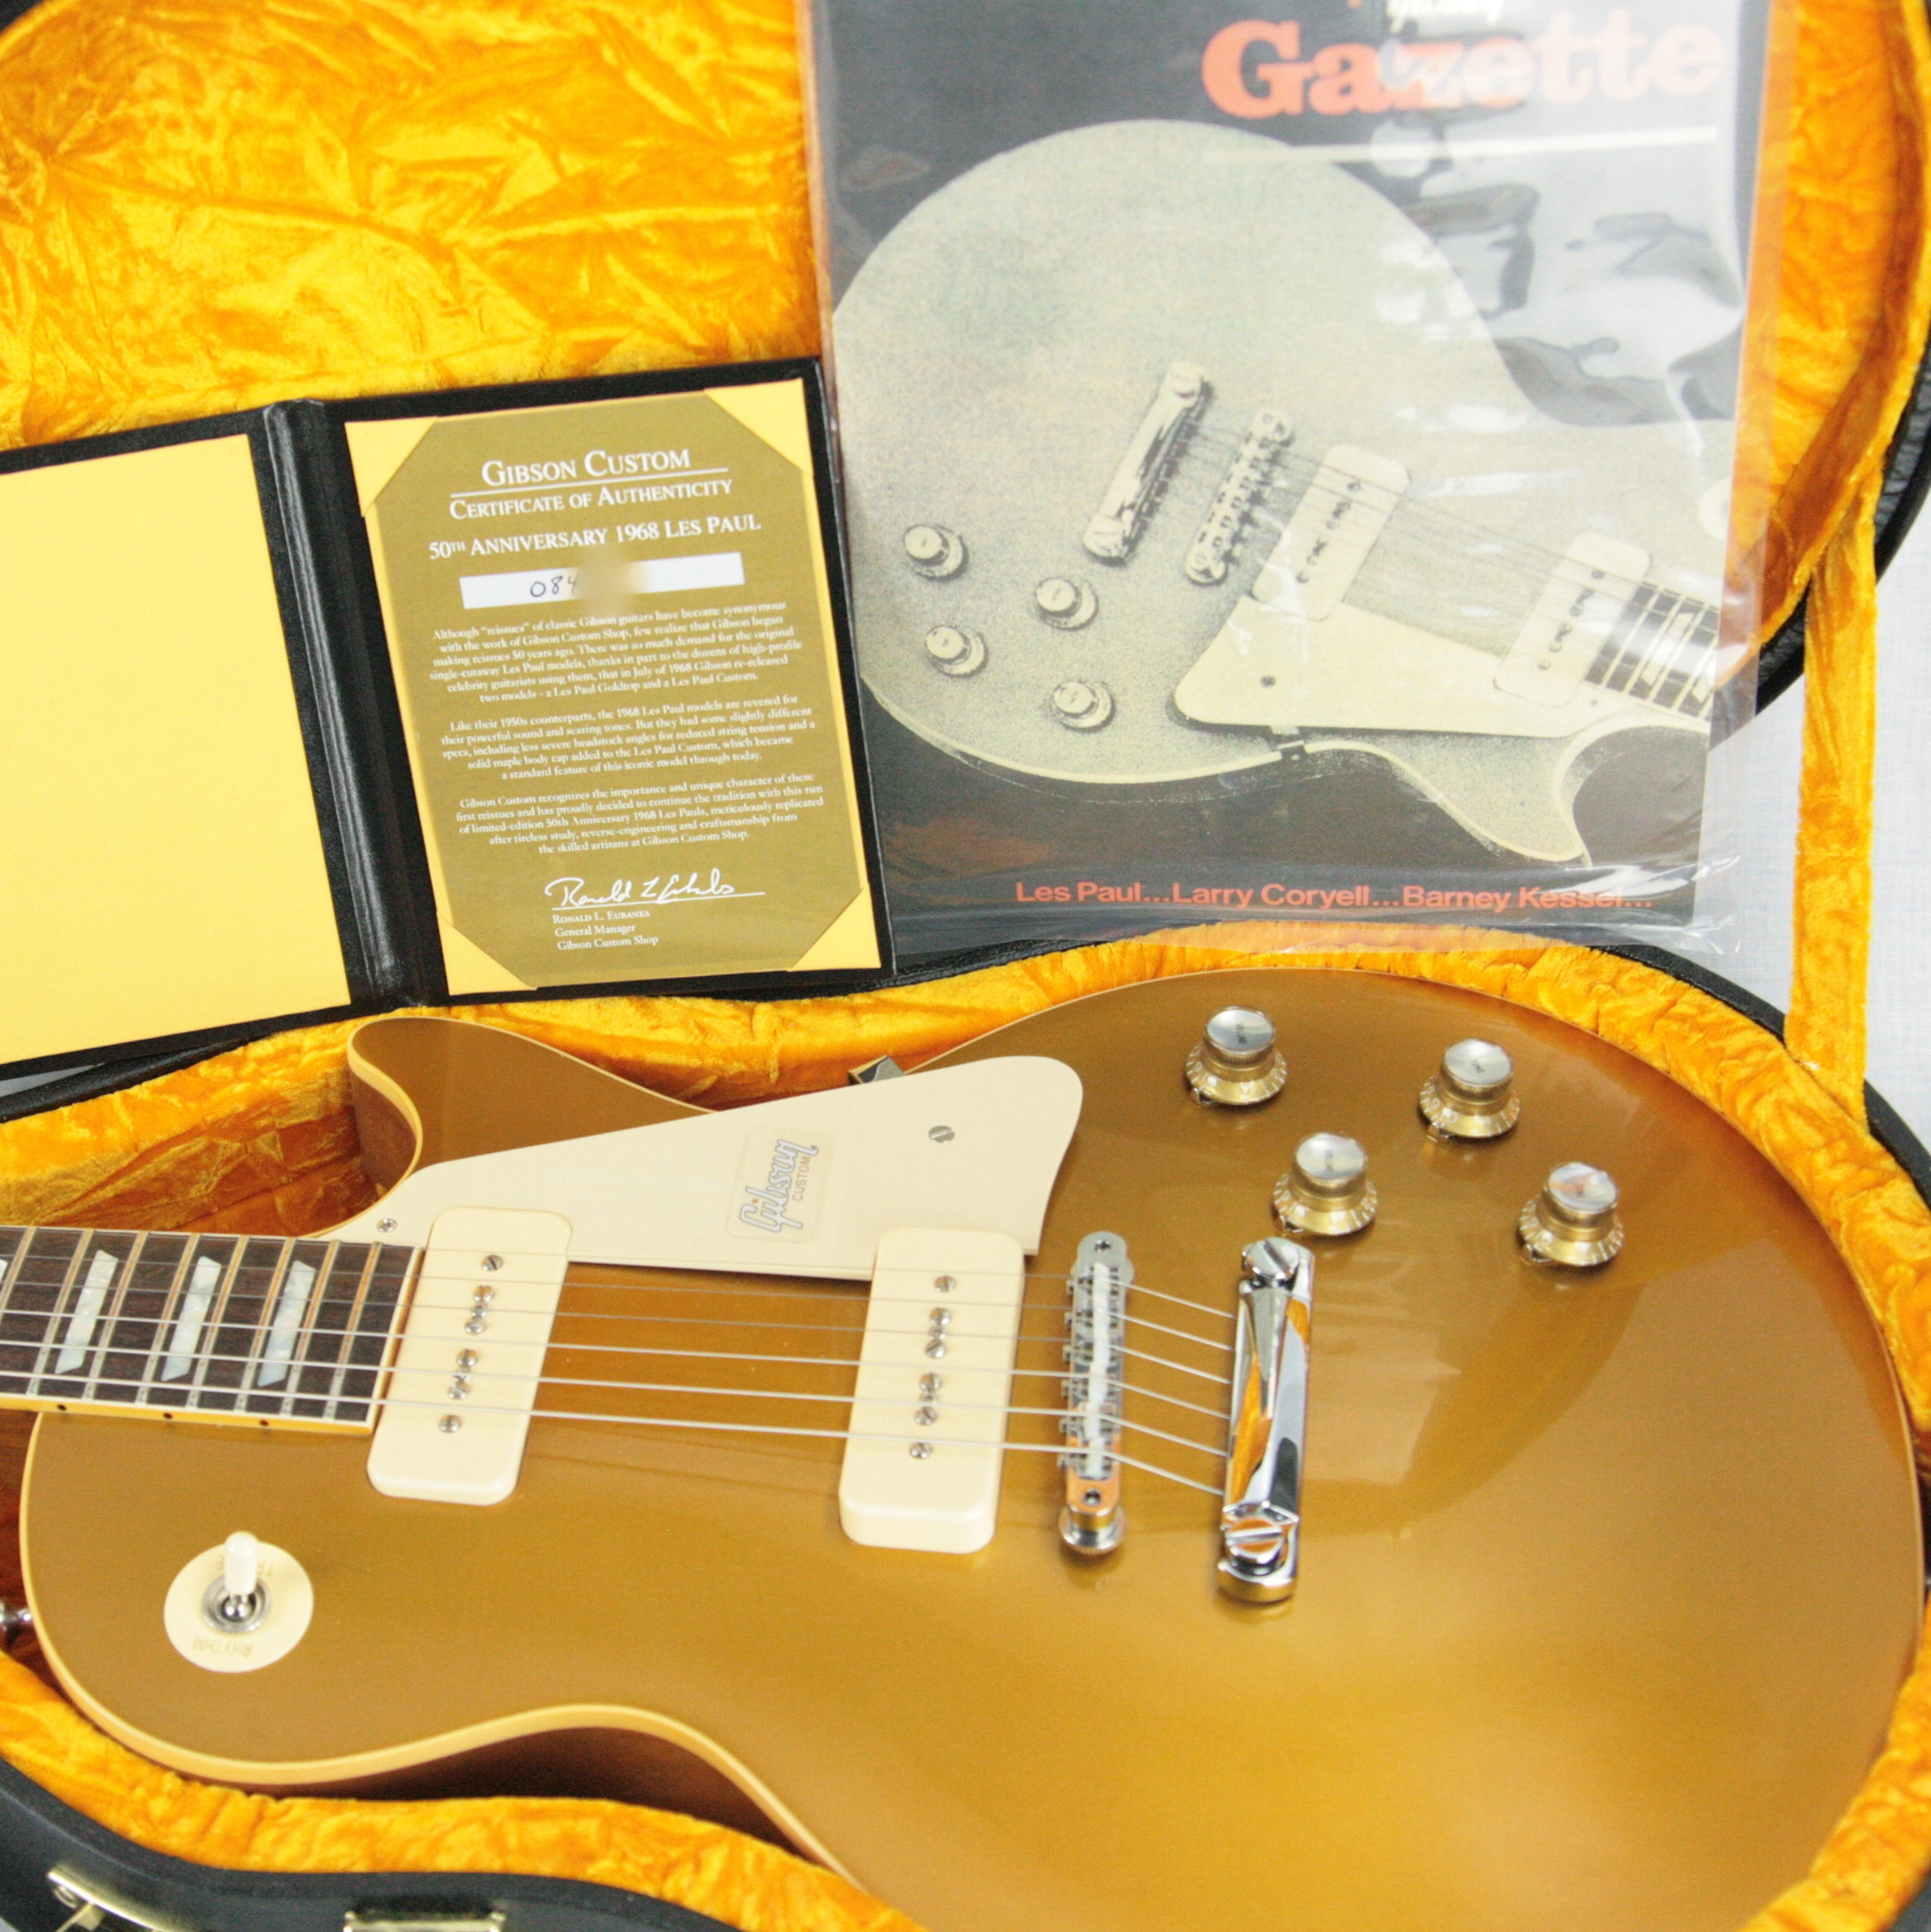 2018 Gibson 1968 Les Paul Goldtop Historic Reissue! 50th Anniversary Limited Edition 68 Made!